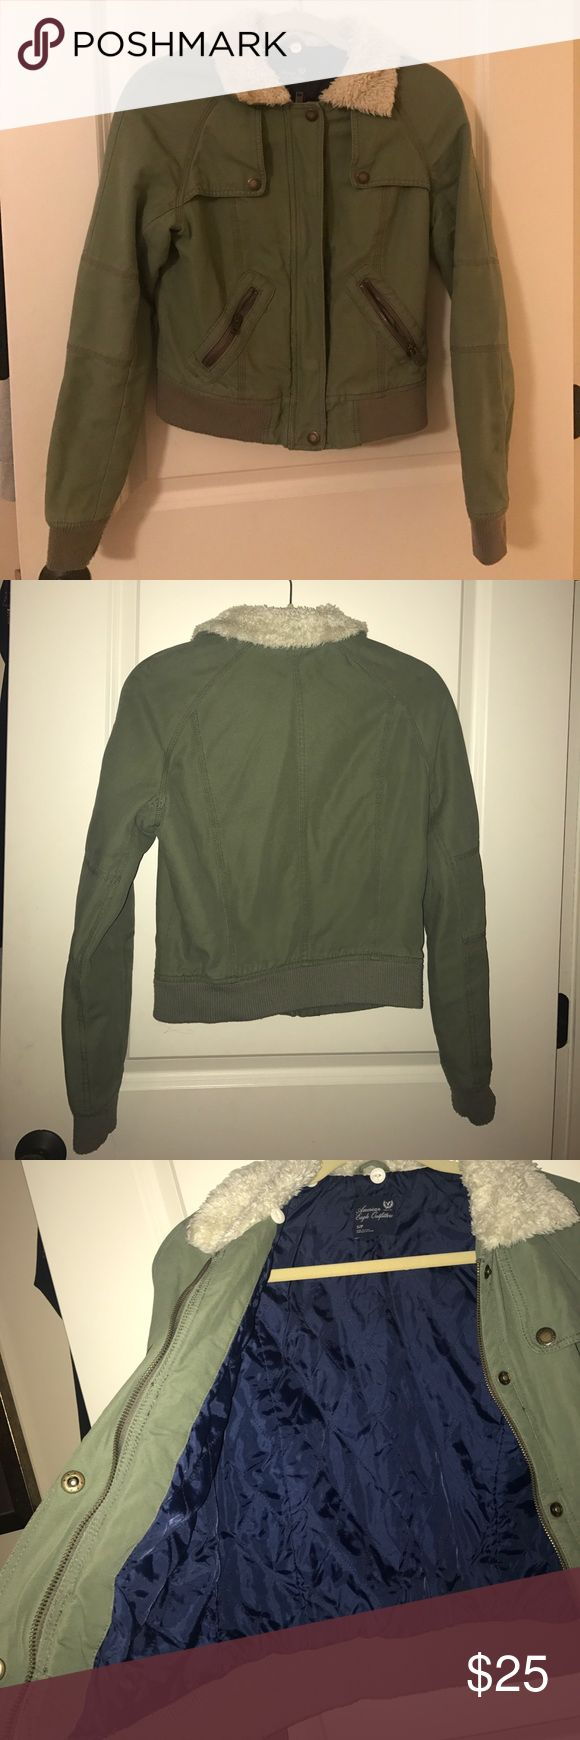 AMERICAN EAGLE Fully Lined Green Military Jacket Barley worn; warm; short length American Eagle Outfitters Jackets & Coats Utility Jackets